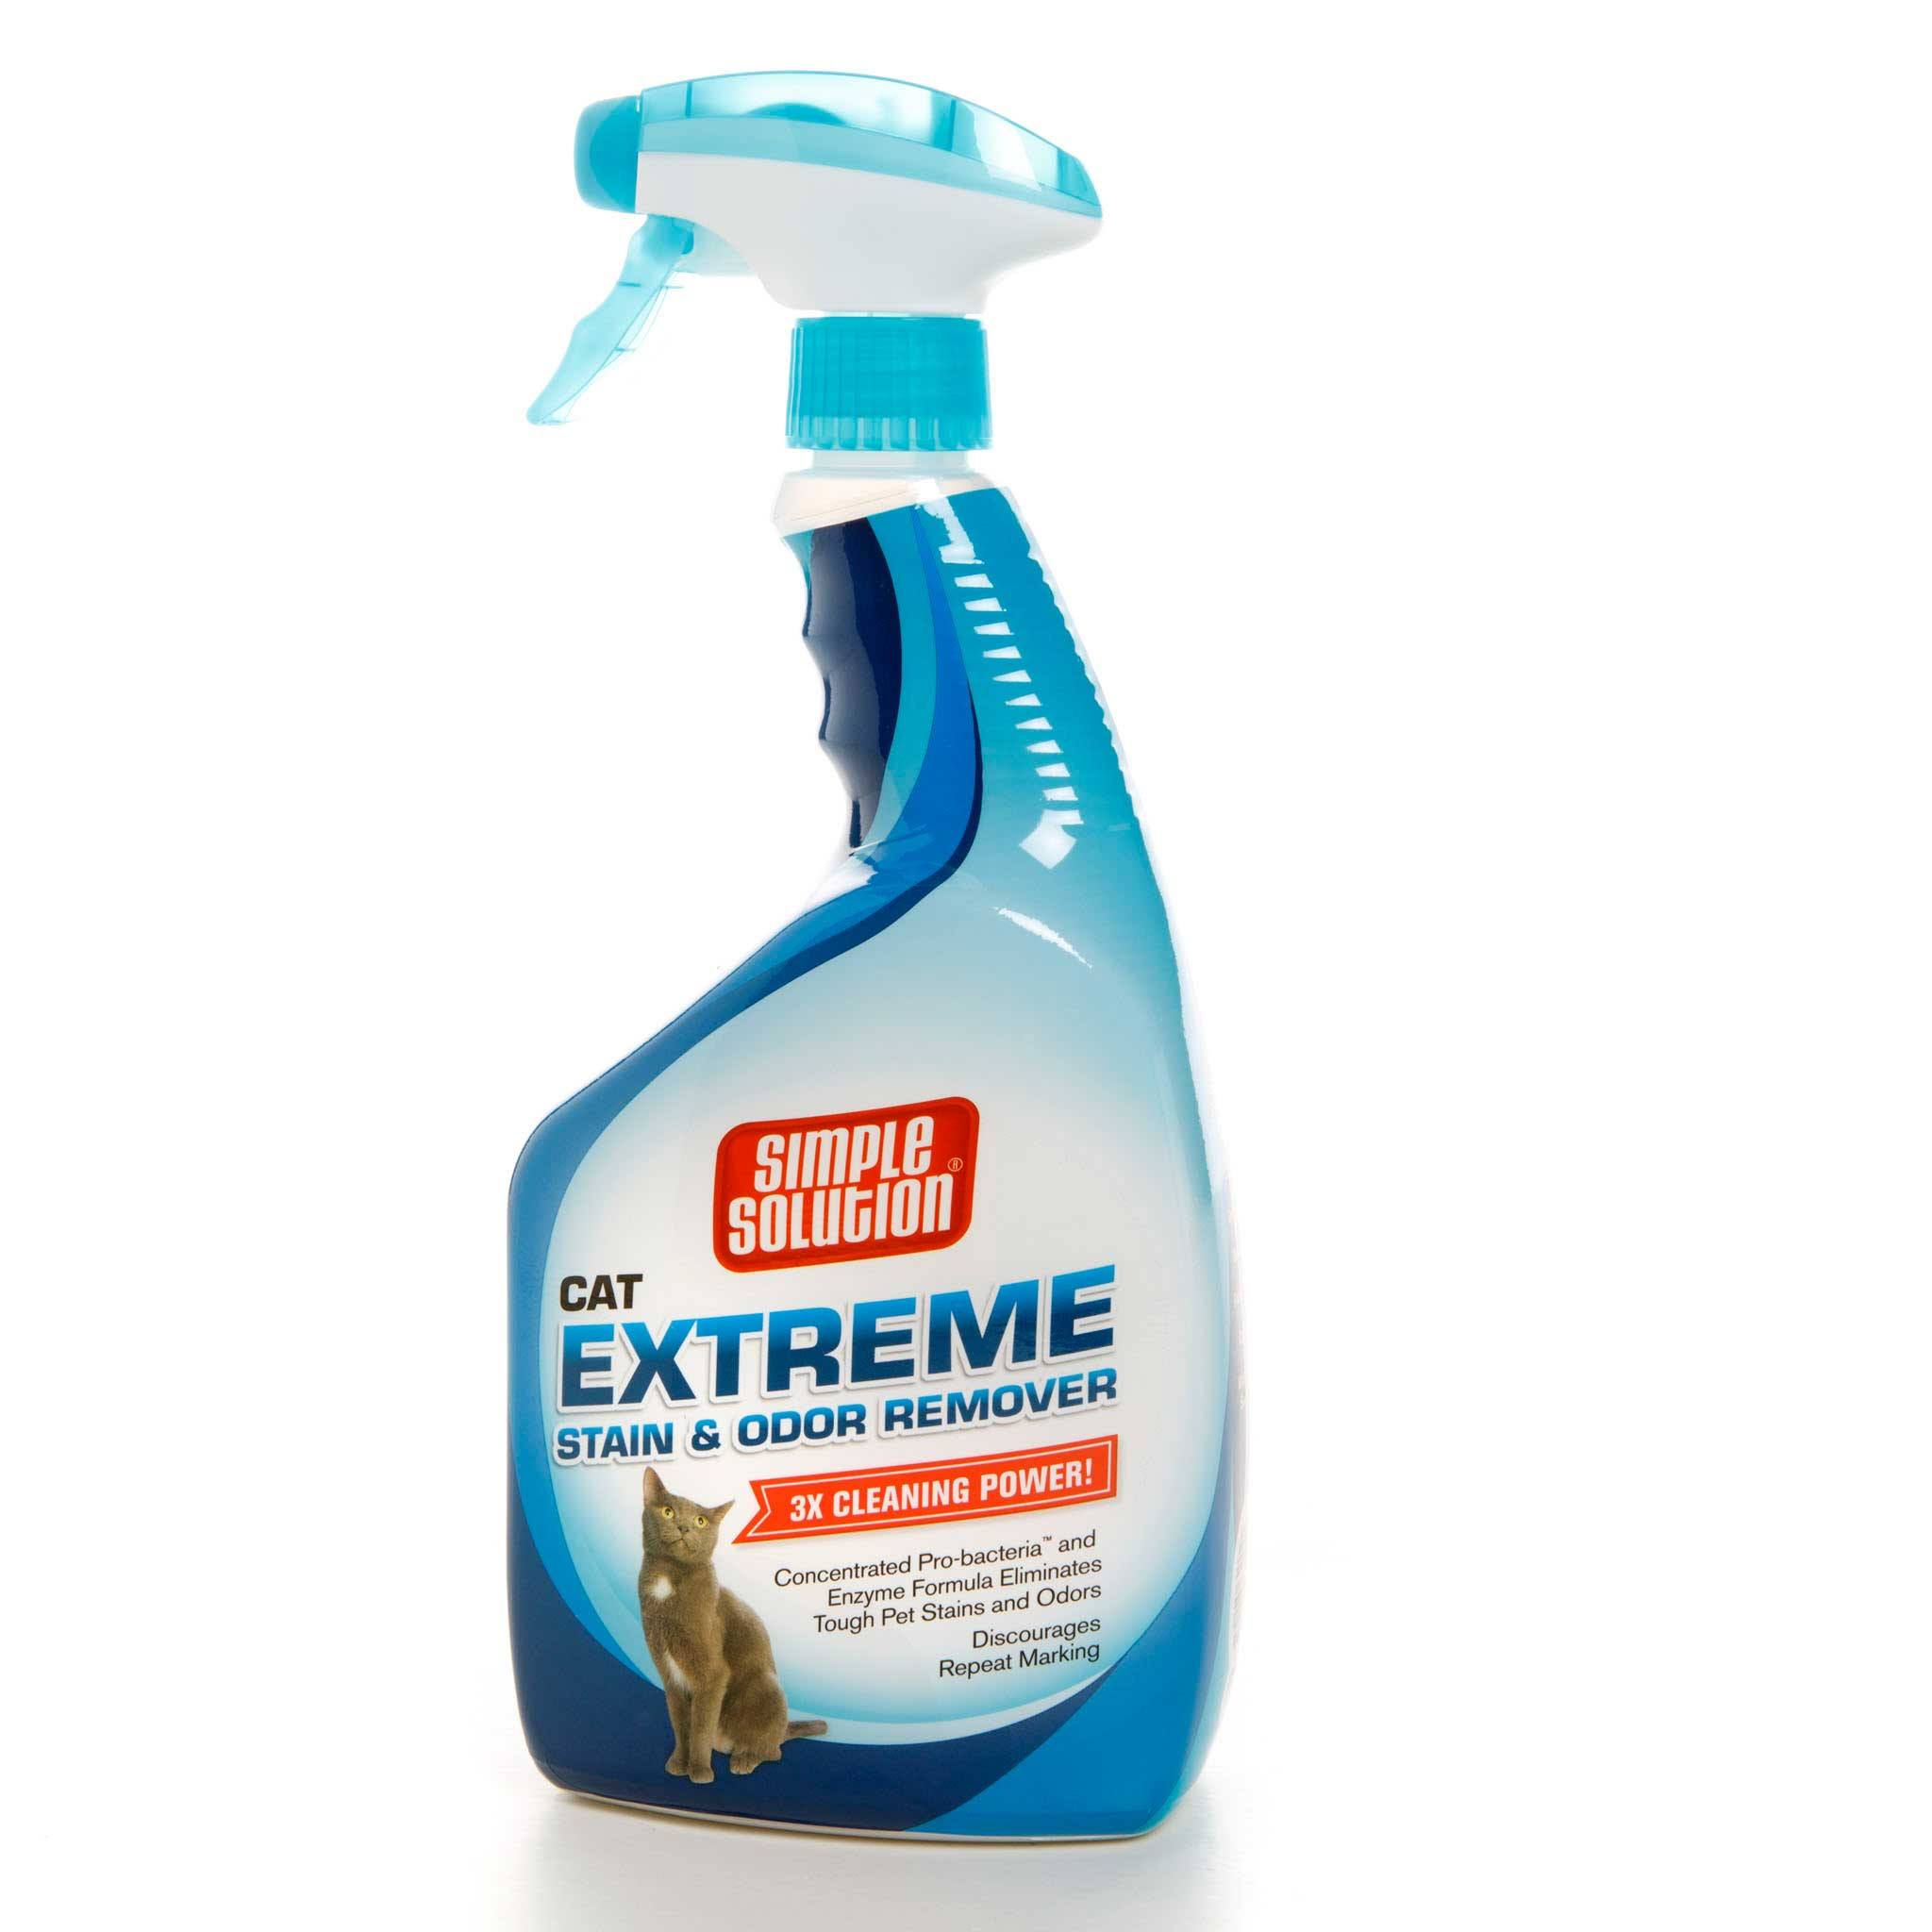 simple solution extreme cat stain and odor remover 32oz